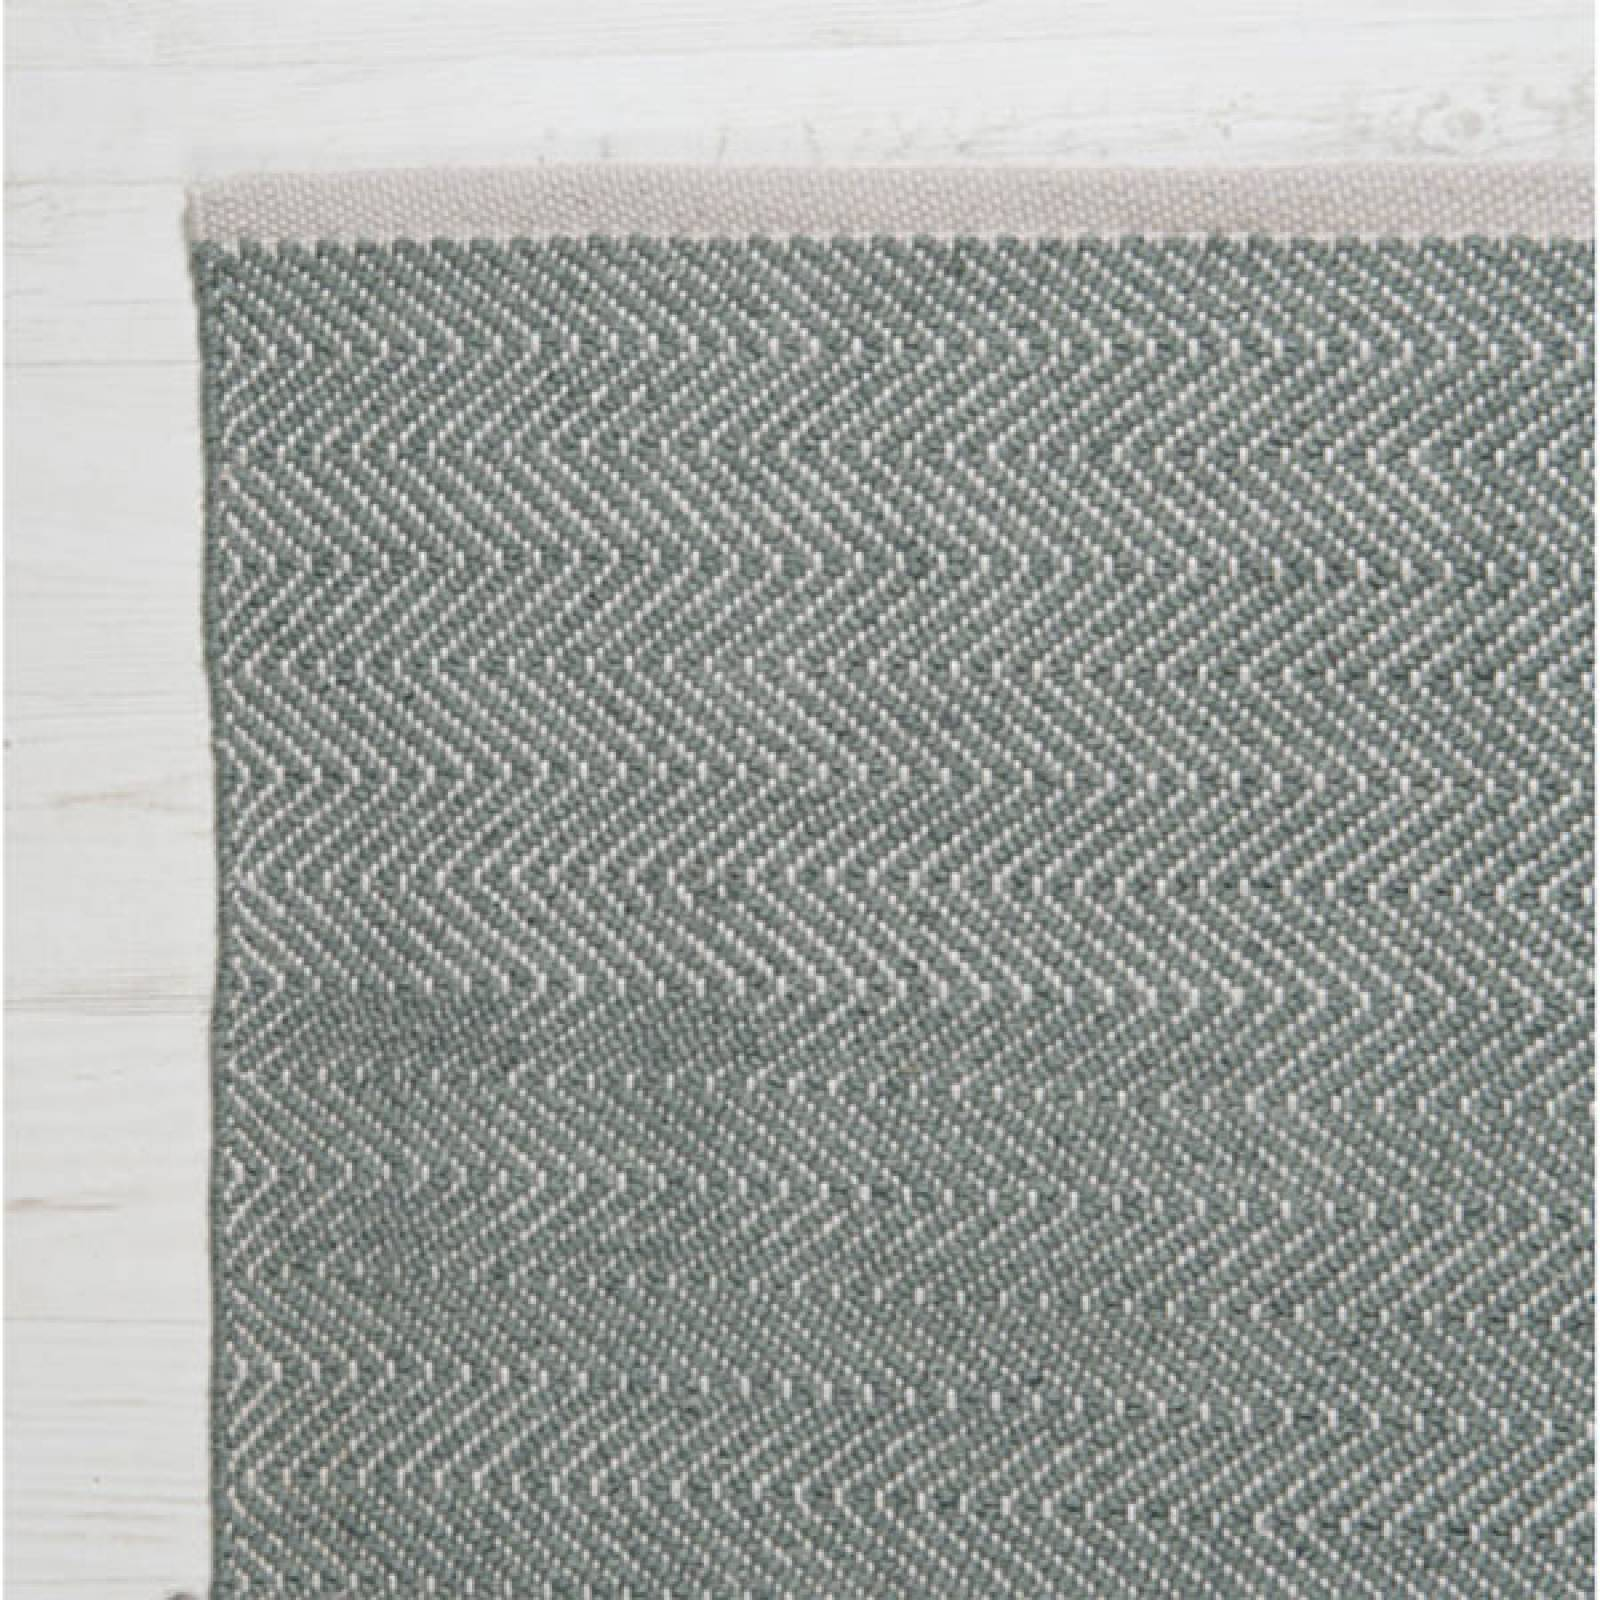 Herringbone GREY 110x60cm Recycled Bottle Rug